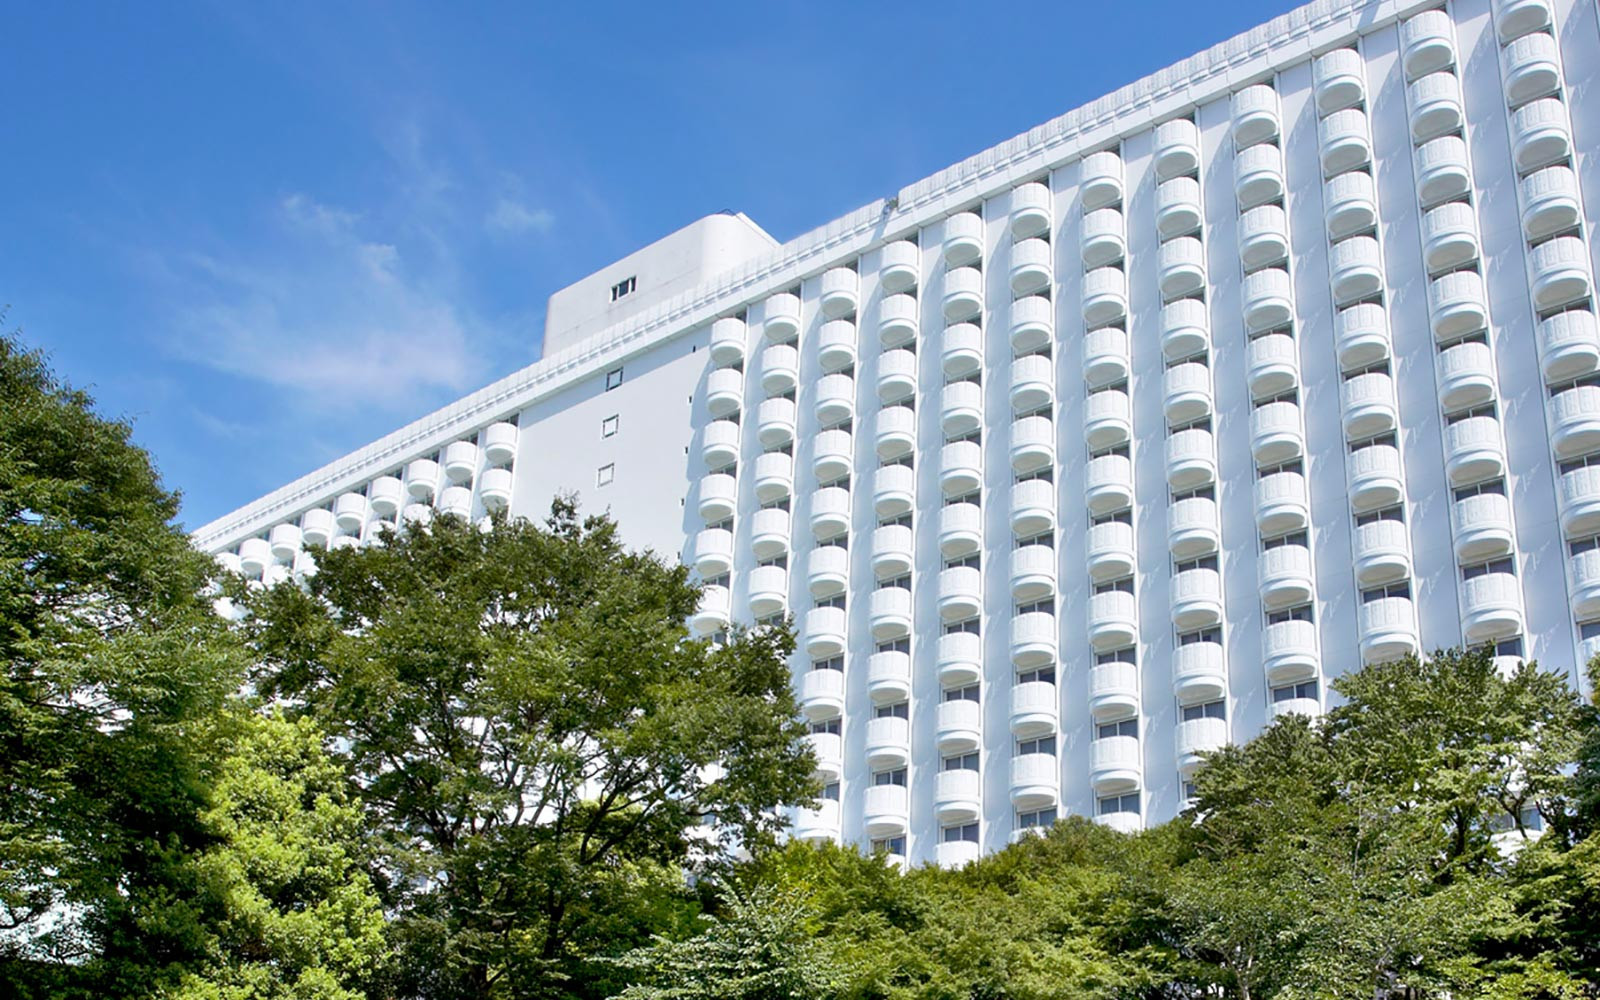 The ANOC General Assembly is taking place at the Grand Prince Hotel New Takanawa ©Prince Hotels